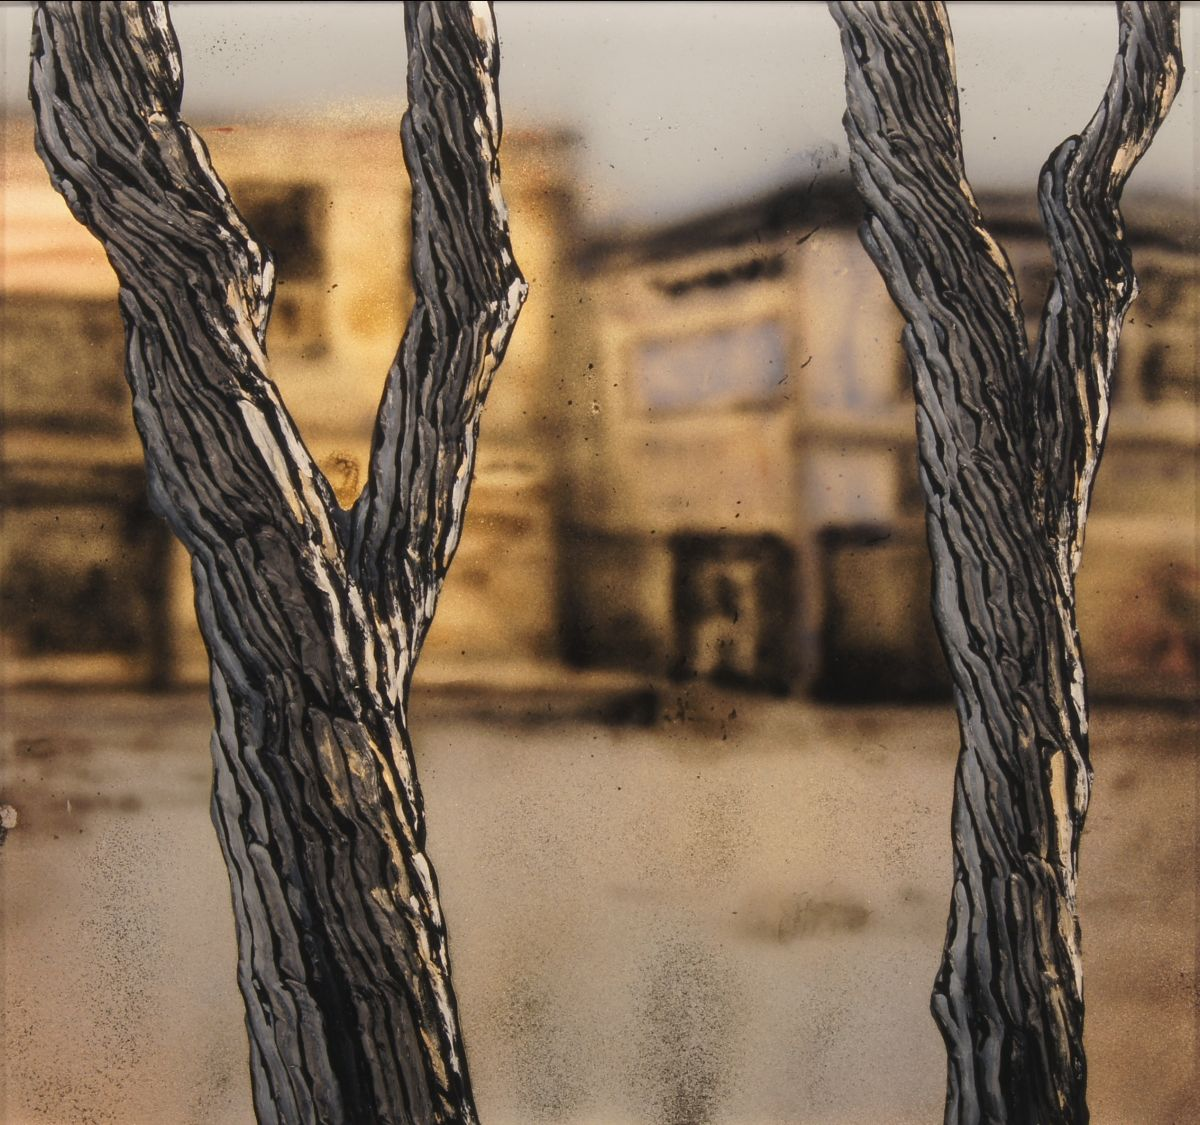 """""""The Supply Company"""" by Christopher Owen Nelson  Mixed Media  18x18"""", One-of-a-Kind  Trees against a backdrop of buildings"""